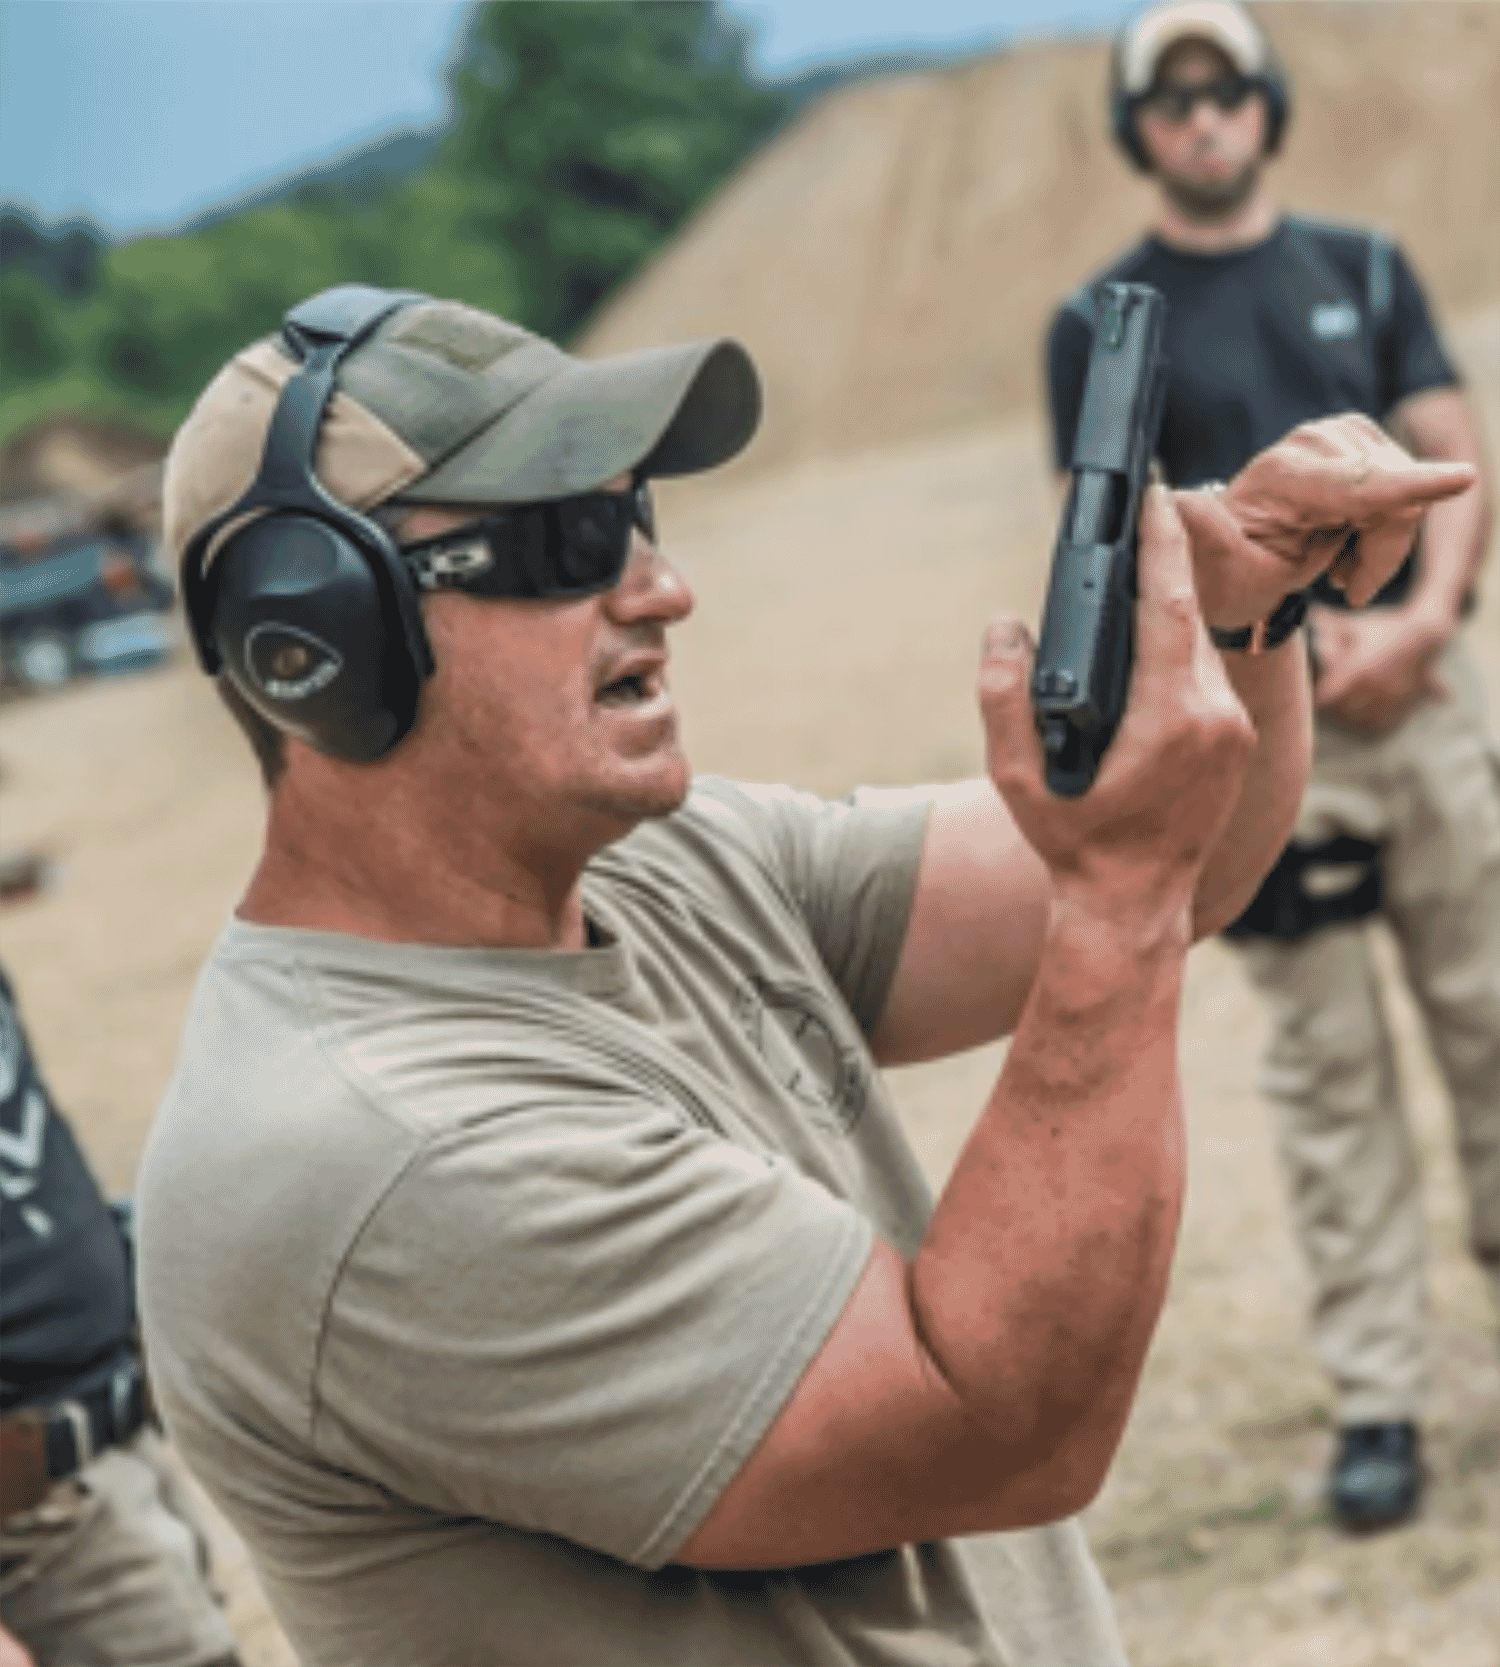 Ohio Concealed Handgun License Training